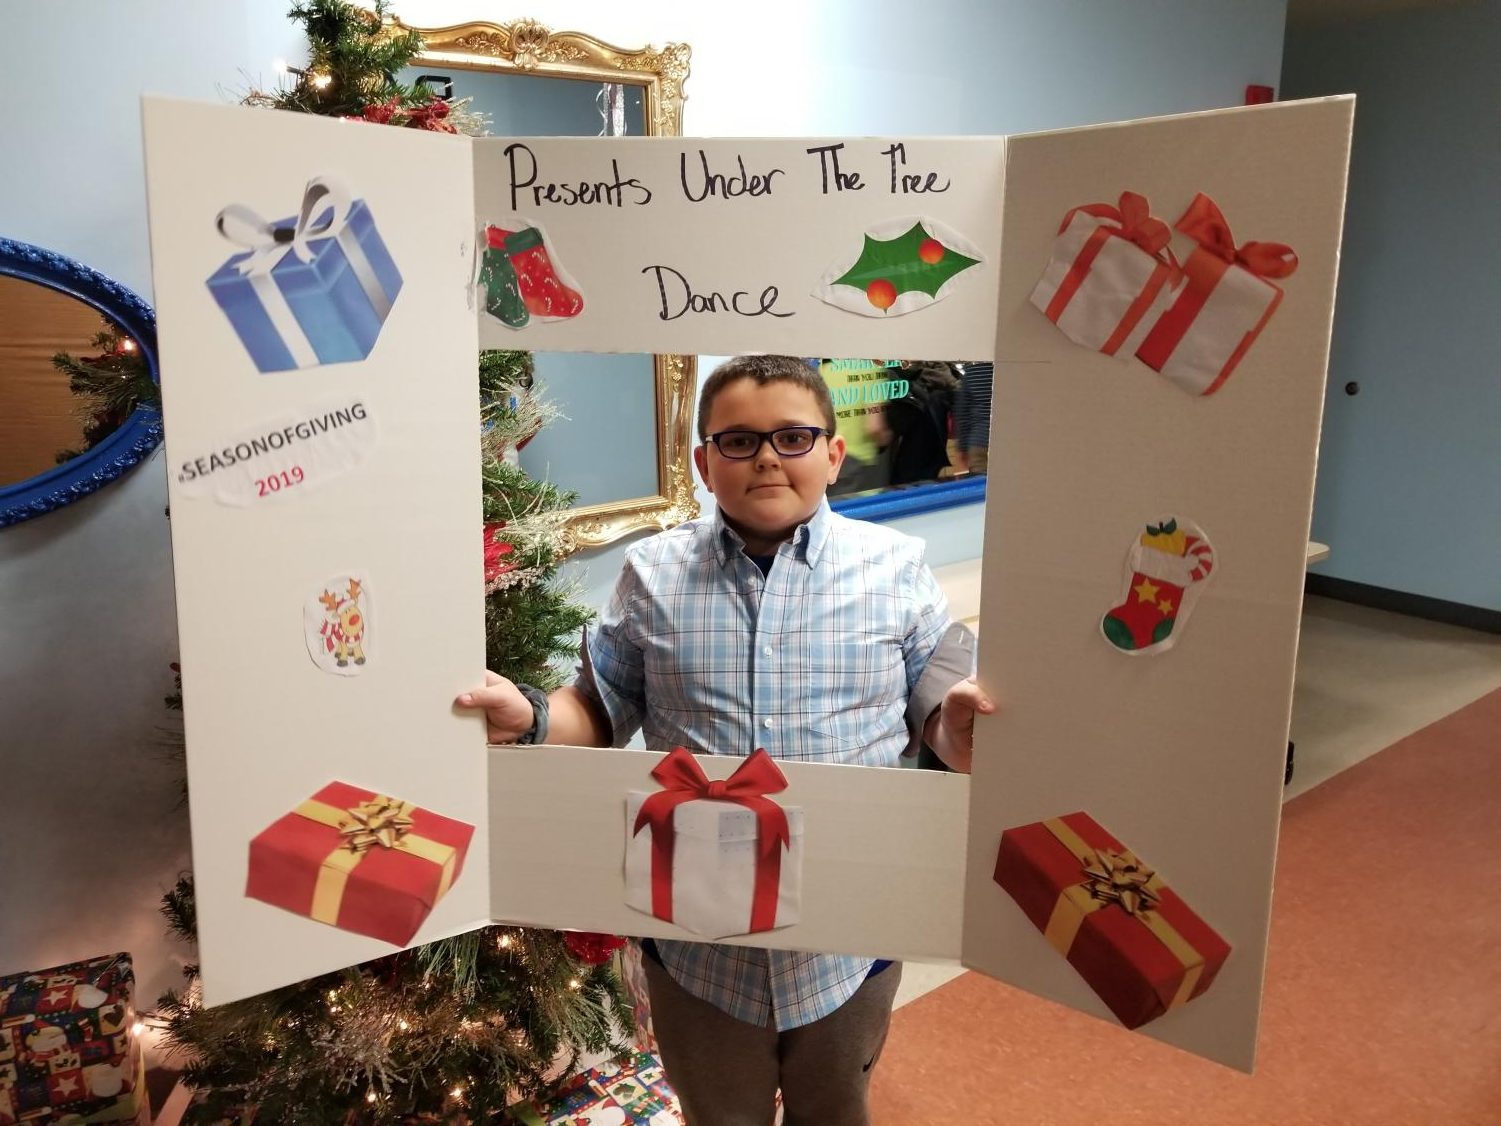 Fifth grader Bryson Hescox is one of the students who attended the dance.